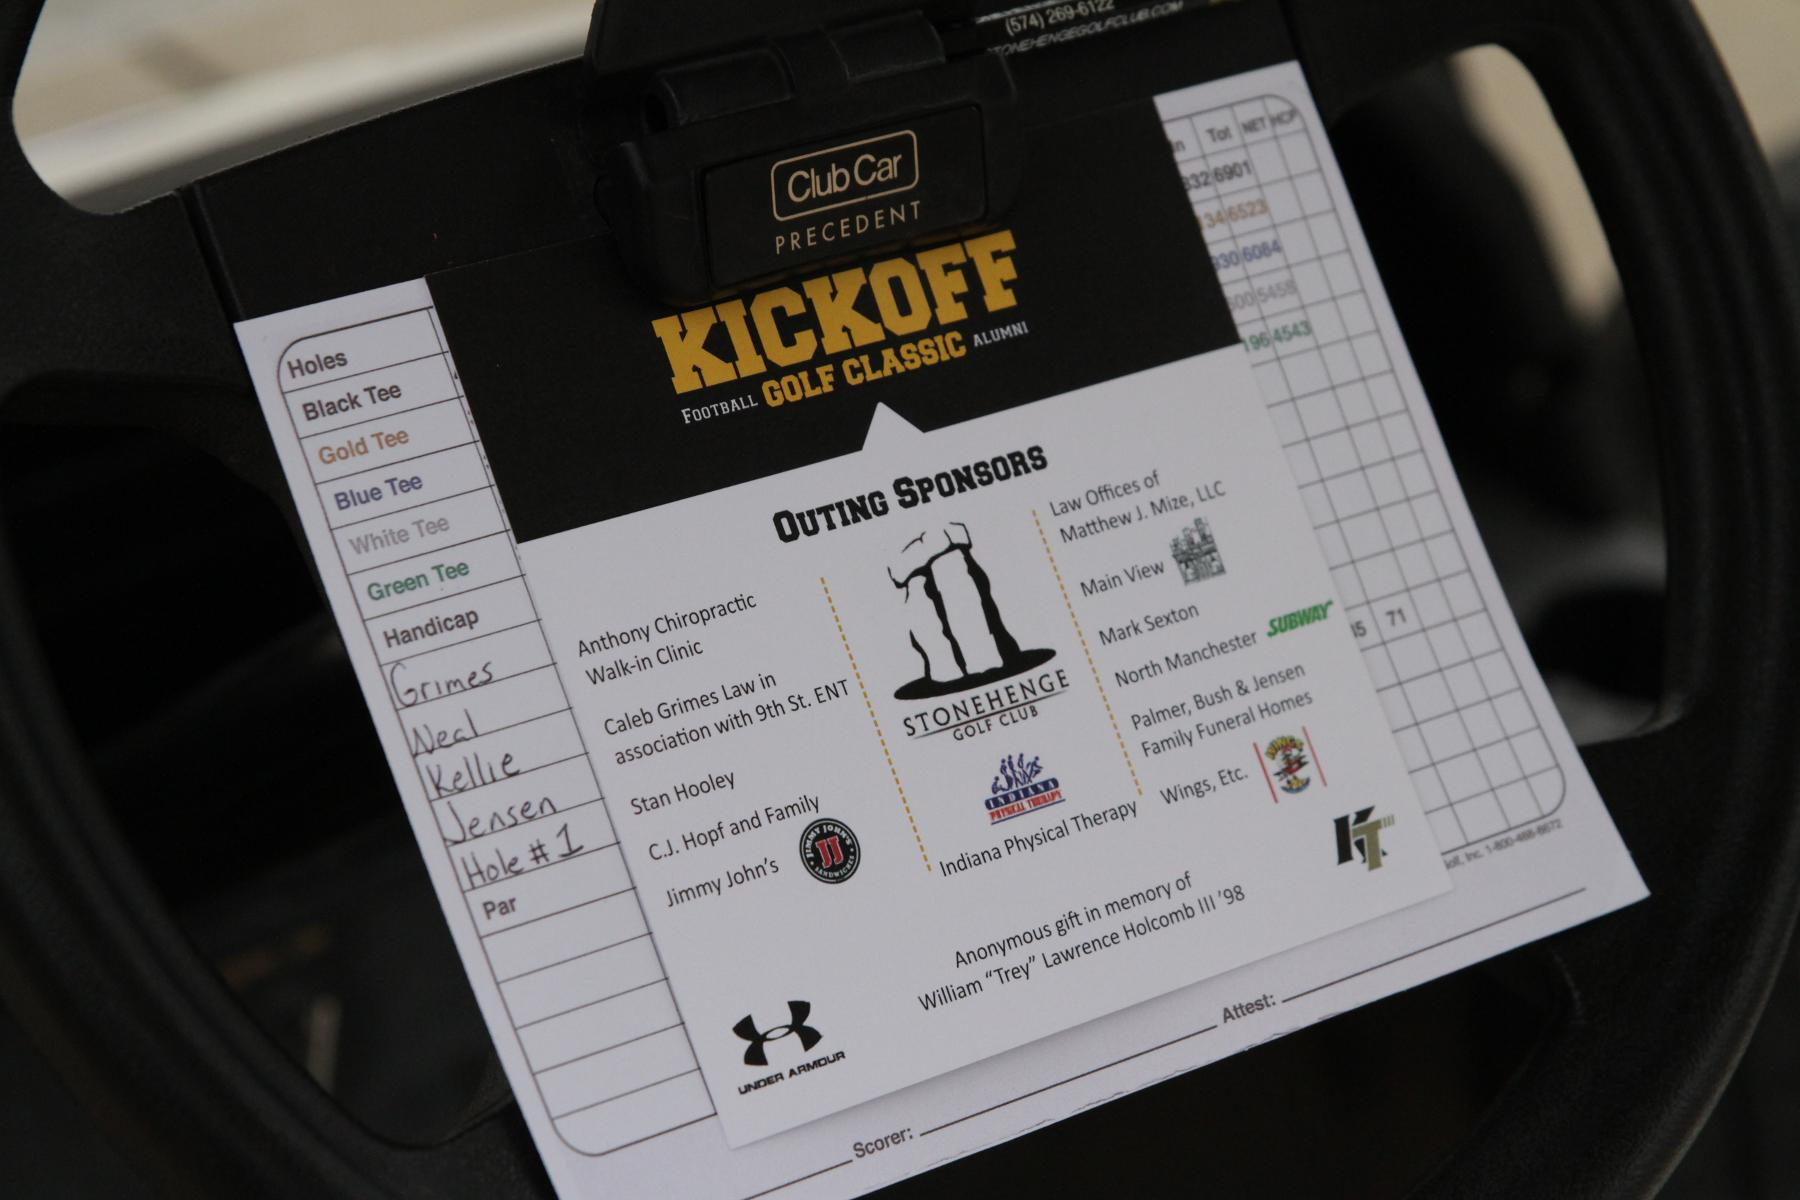 Register now for second Kickoff Classic outing